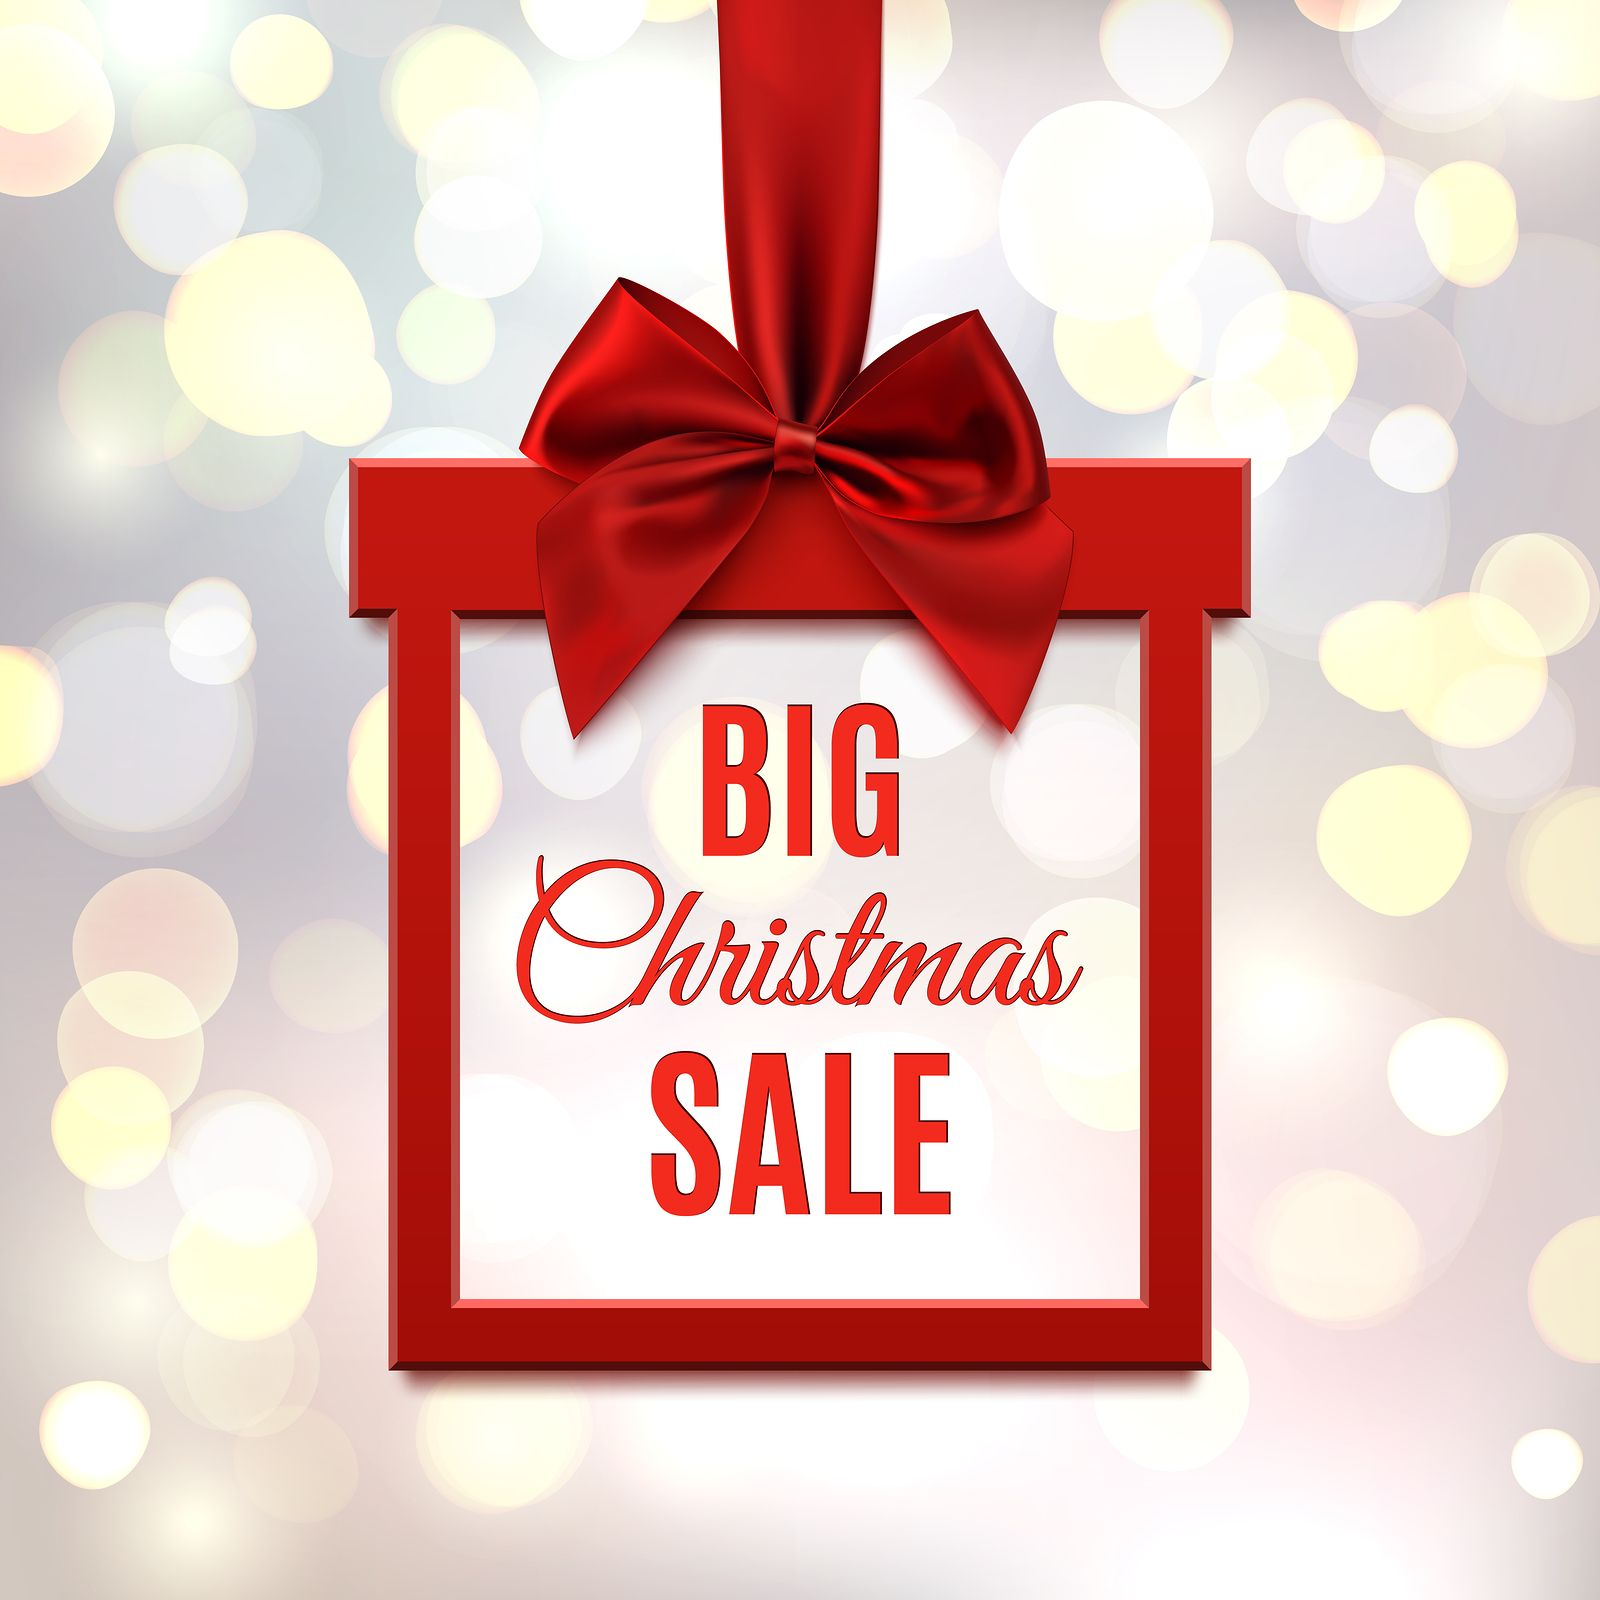 Big Christmas Sale Christmas Sale Christmas Gifts Christmas Decorations